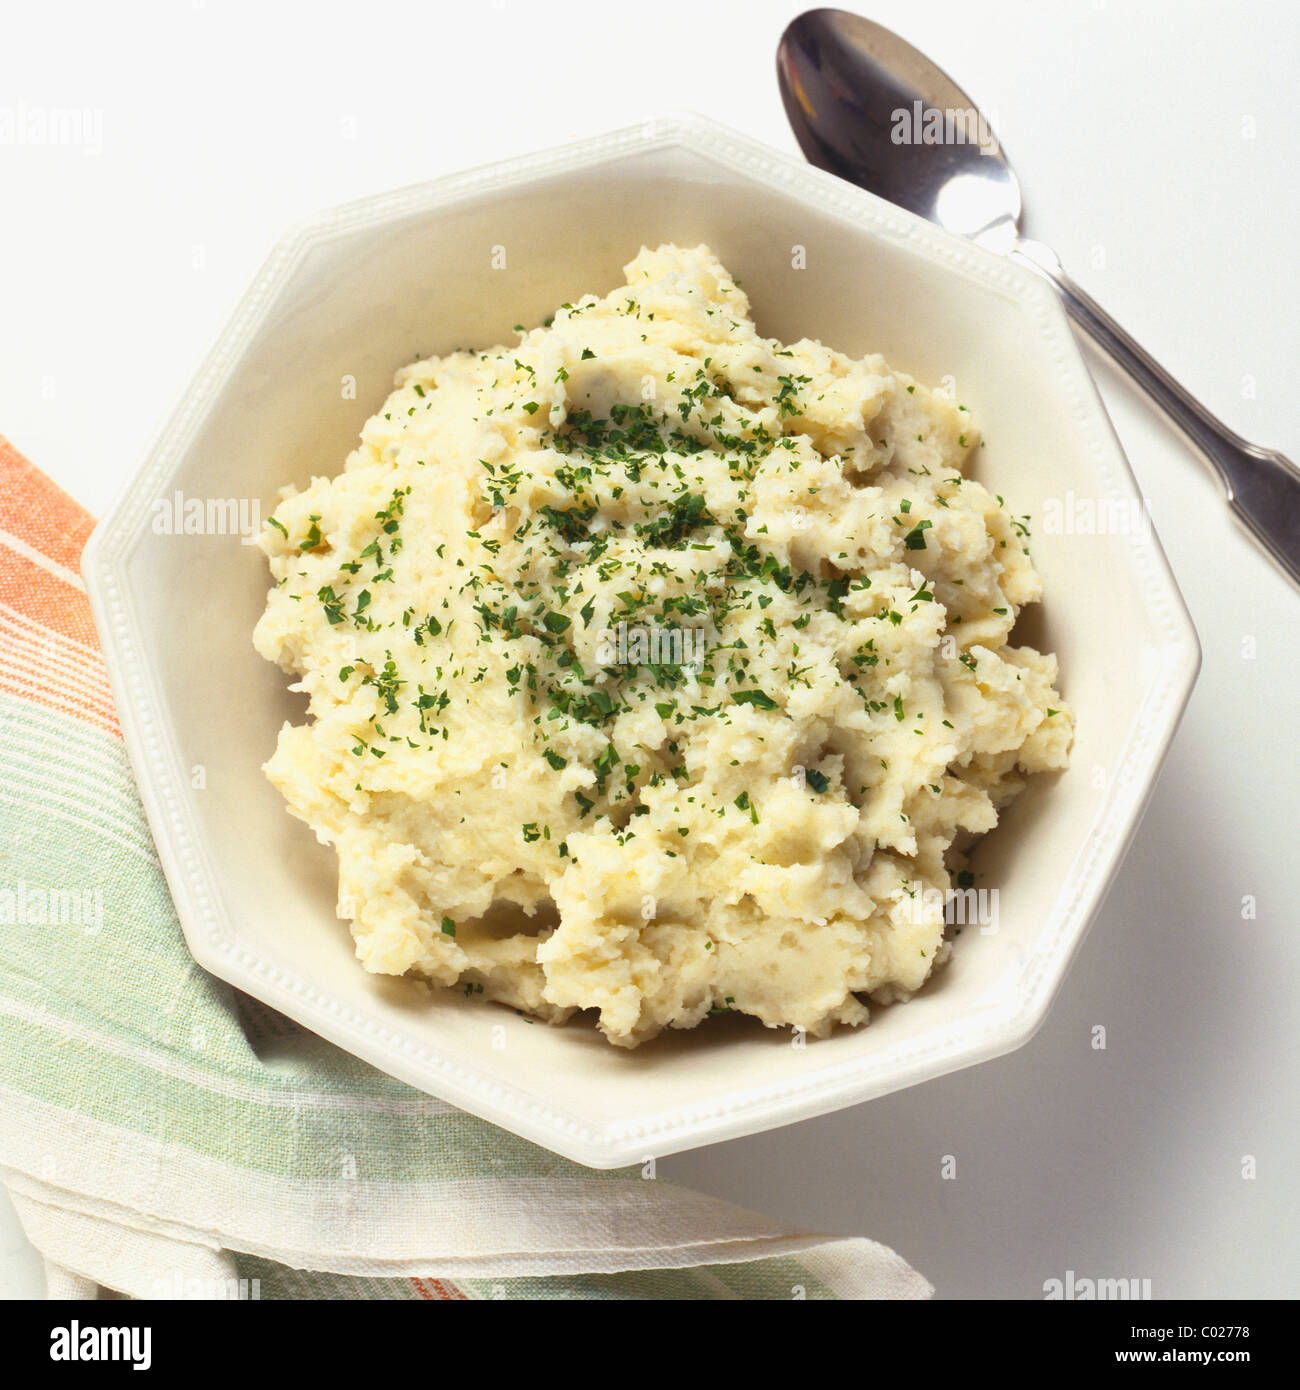 bowl of mashed potatoes with parsley - Stock Image